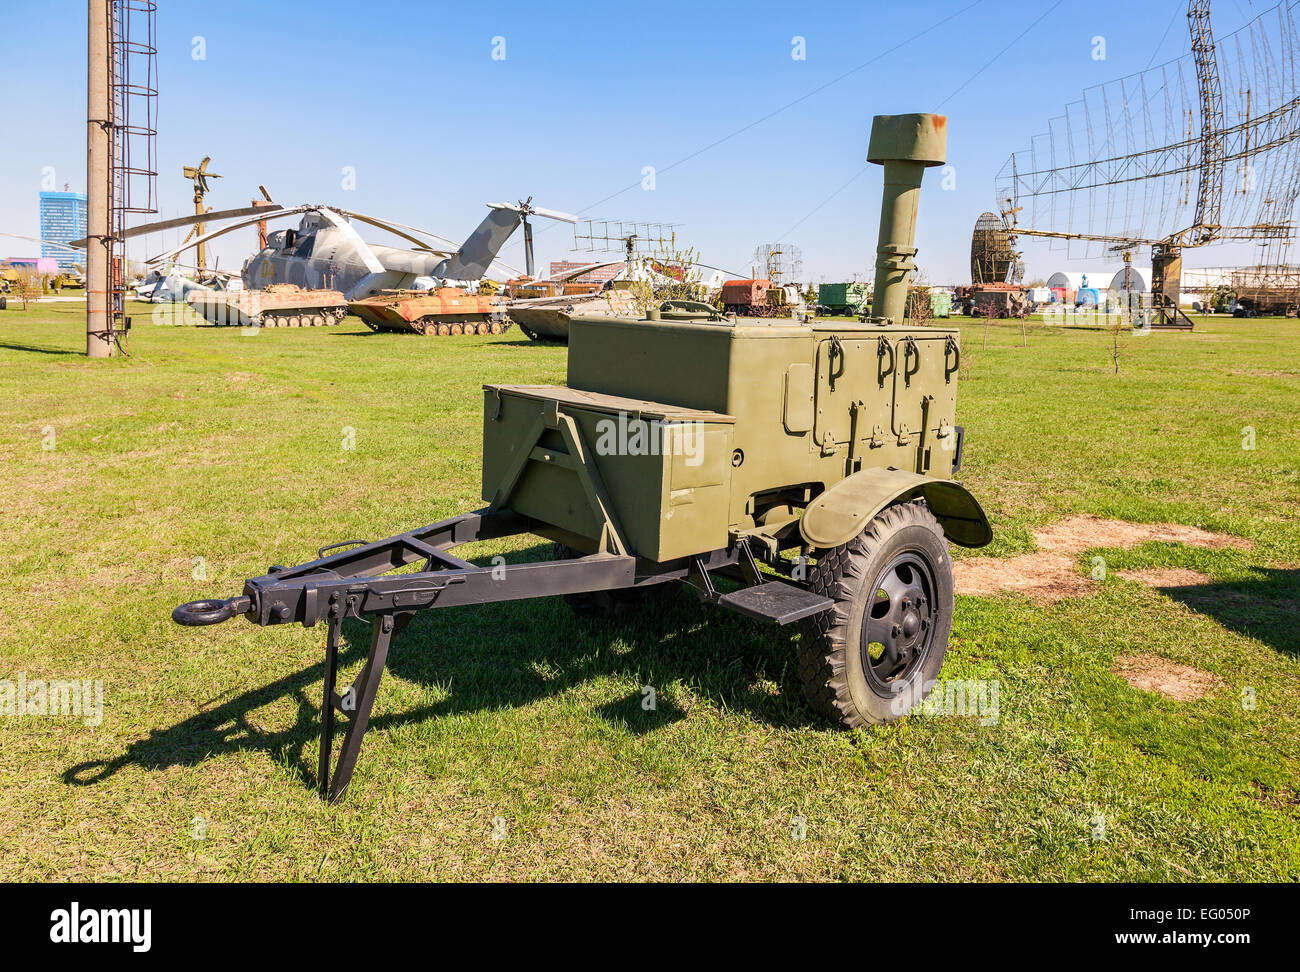 Mobile metal kitchen stove to feed soldiers at the technical museum in Togliatti, Russia - Stock Image